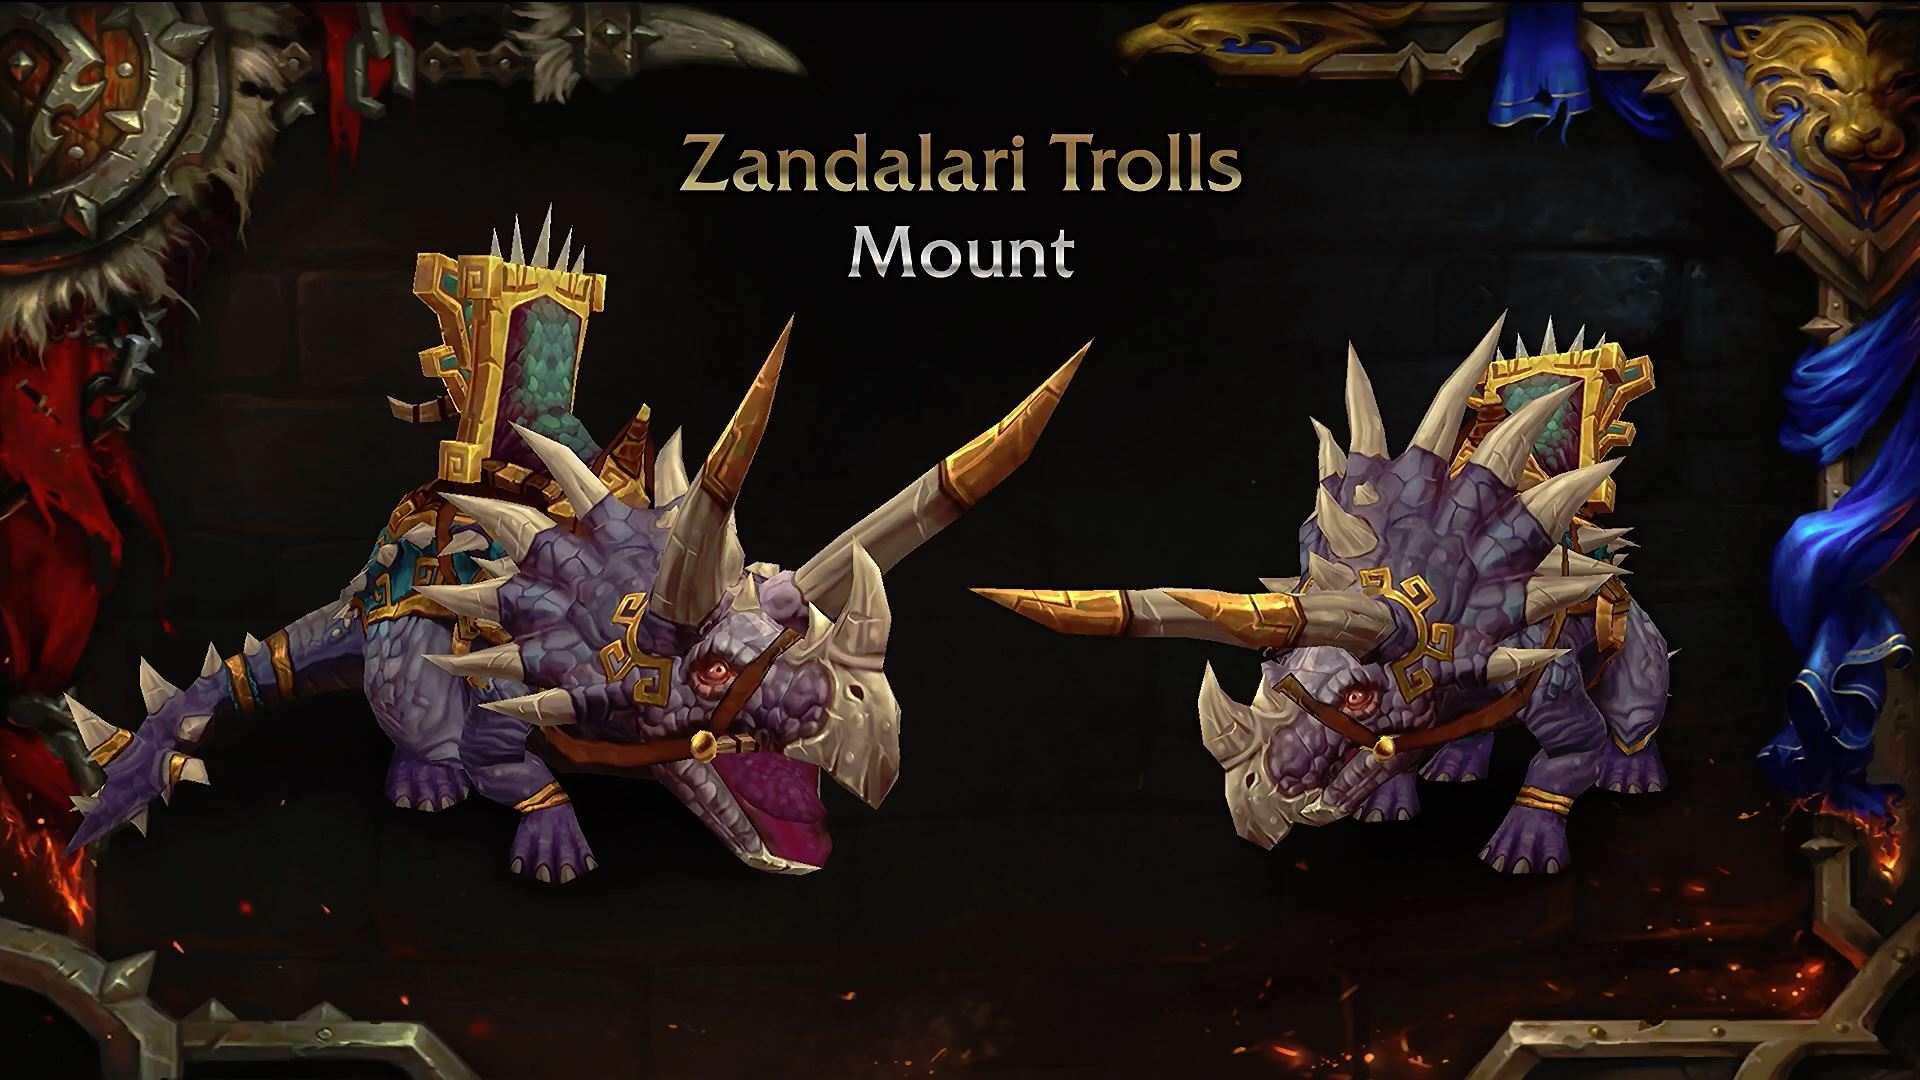 b48c4e487 Zandalari Trolls and Kul Tiran Humans Unlock Requirements